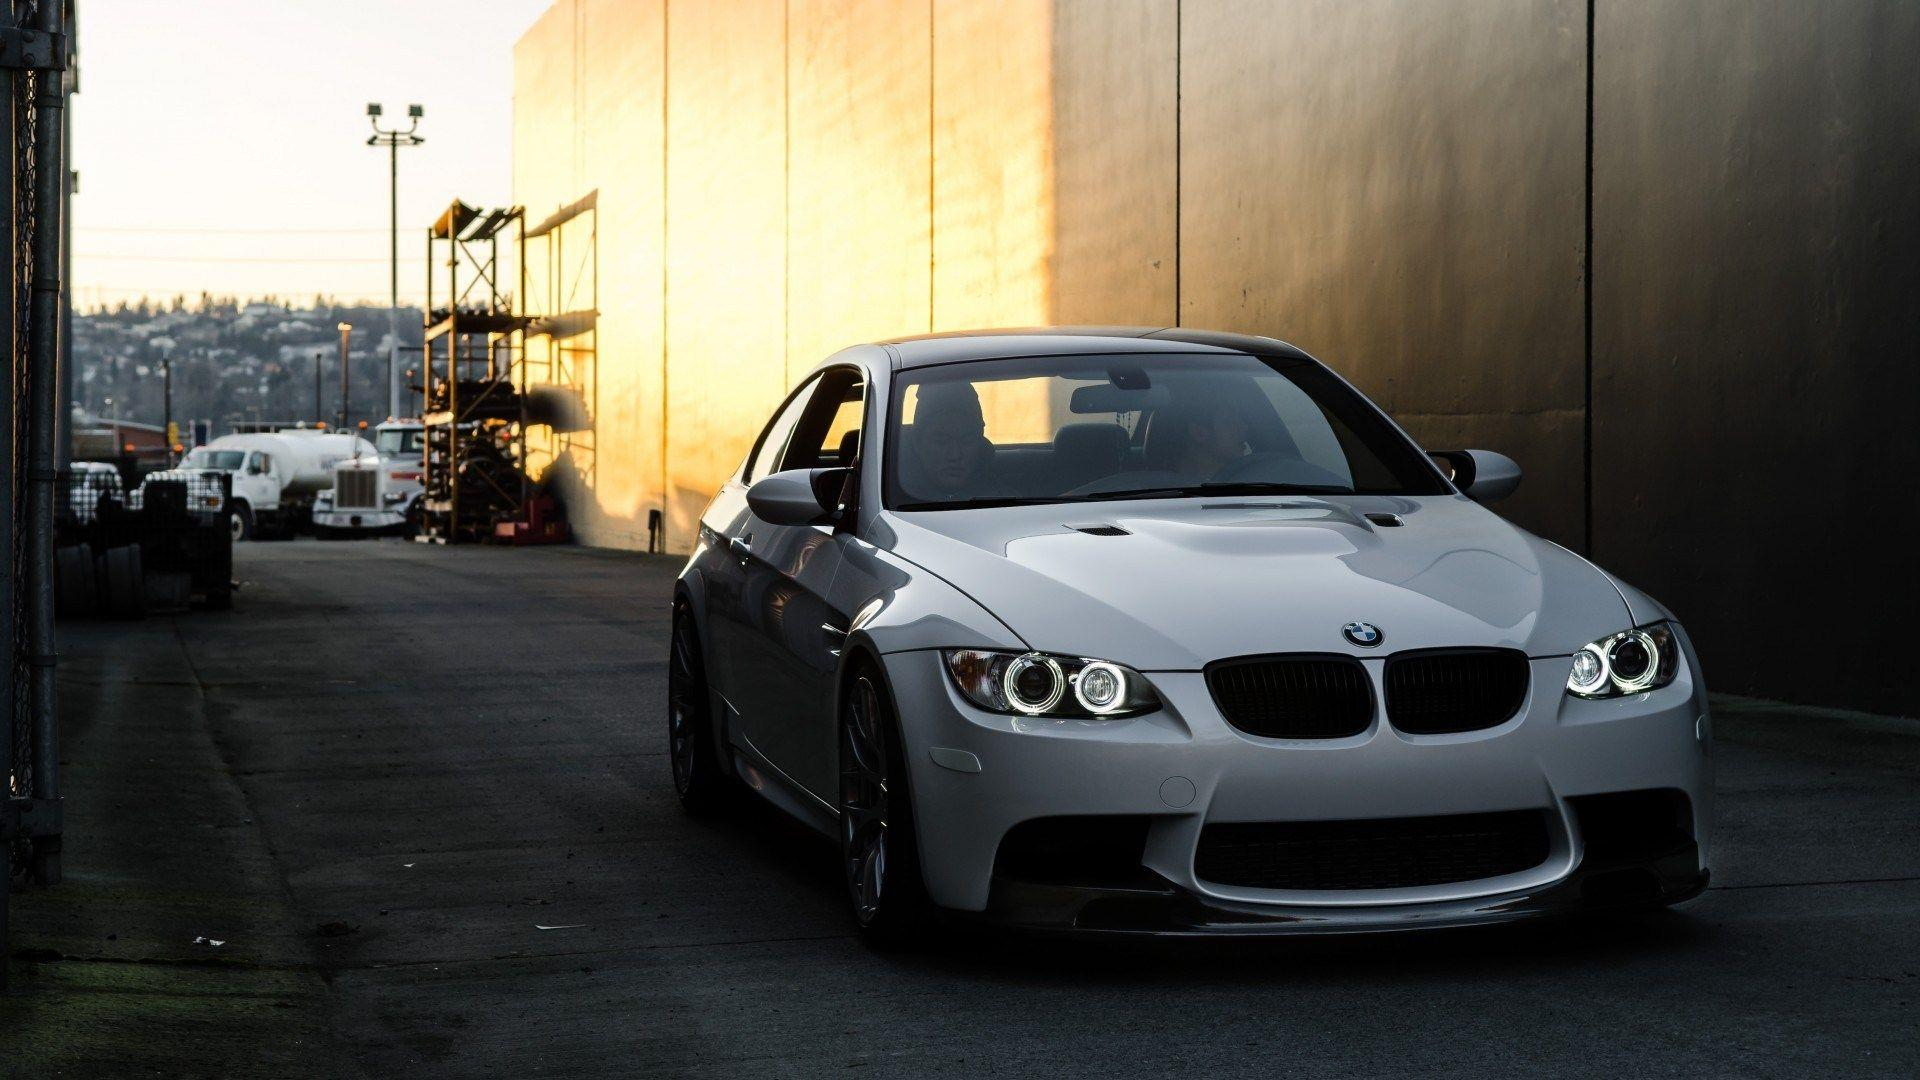 BMW E92 Wallpapers